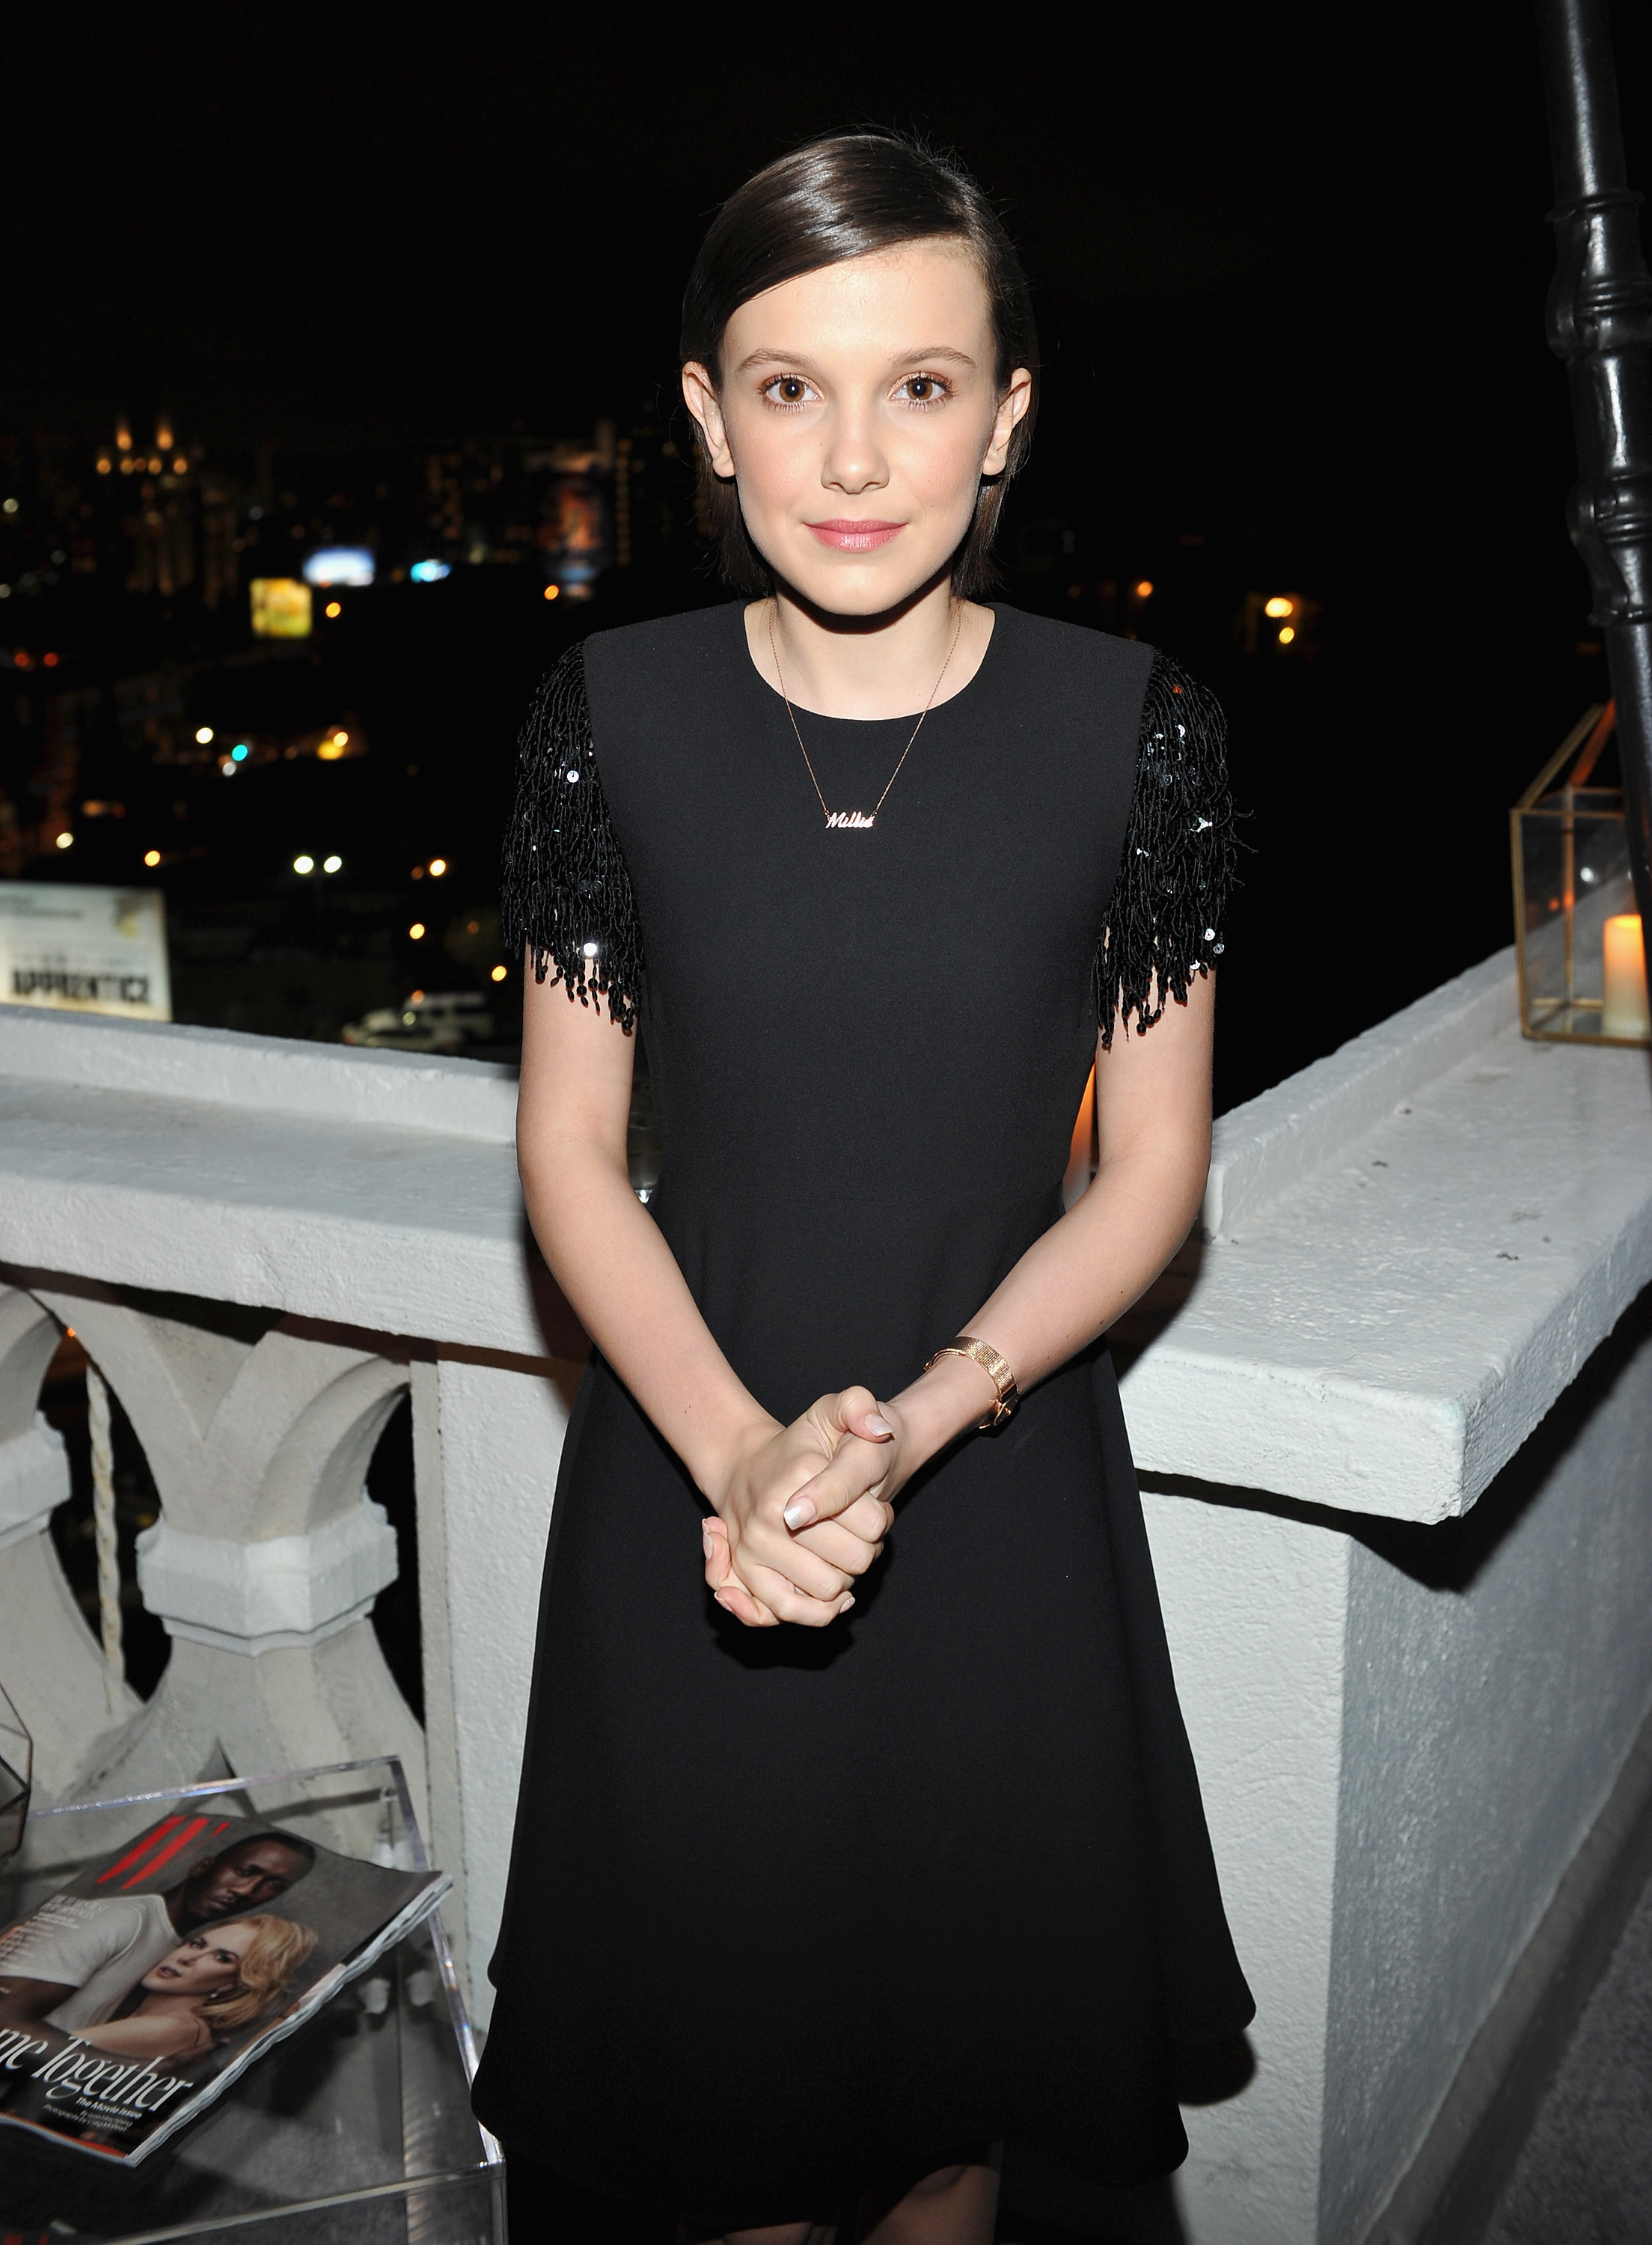 Millie Bobby Brown Wore A Flapper Girl Dress With Glitter